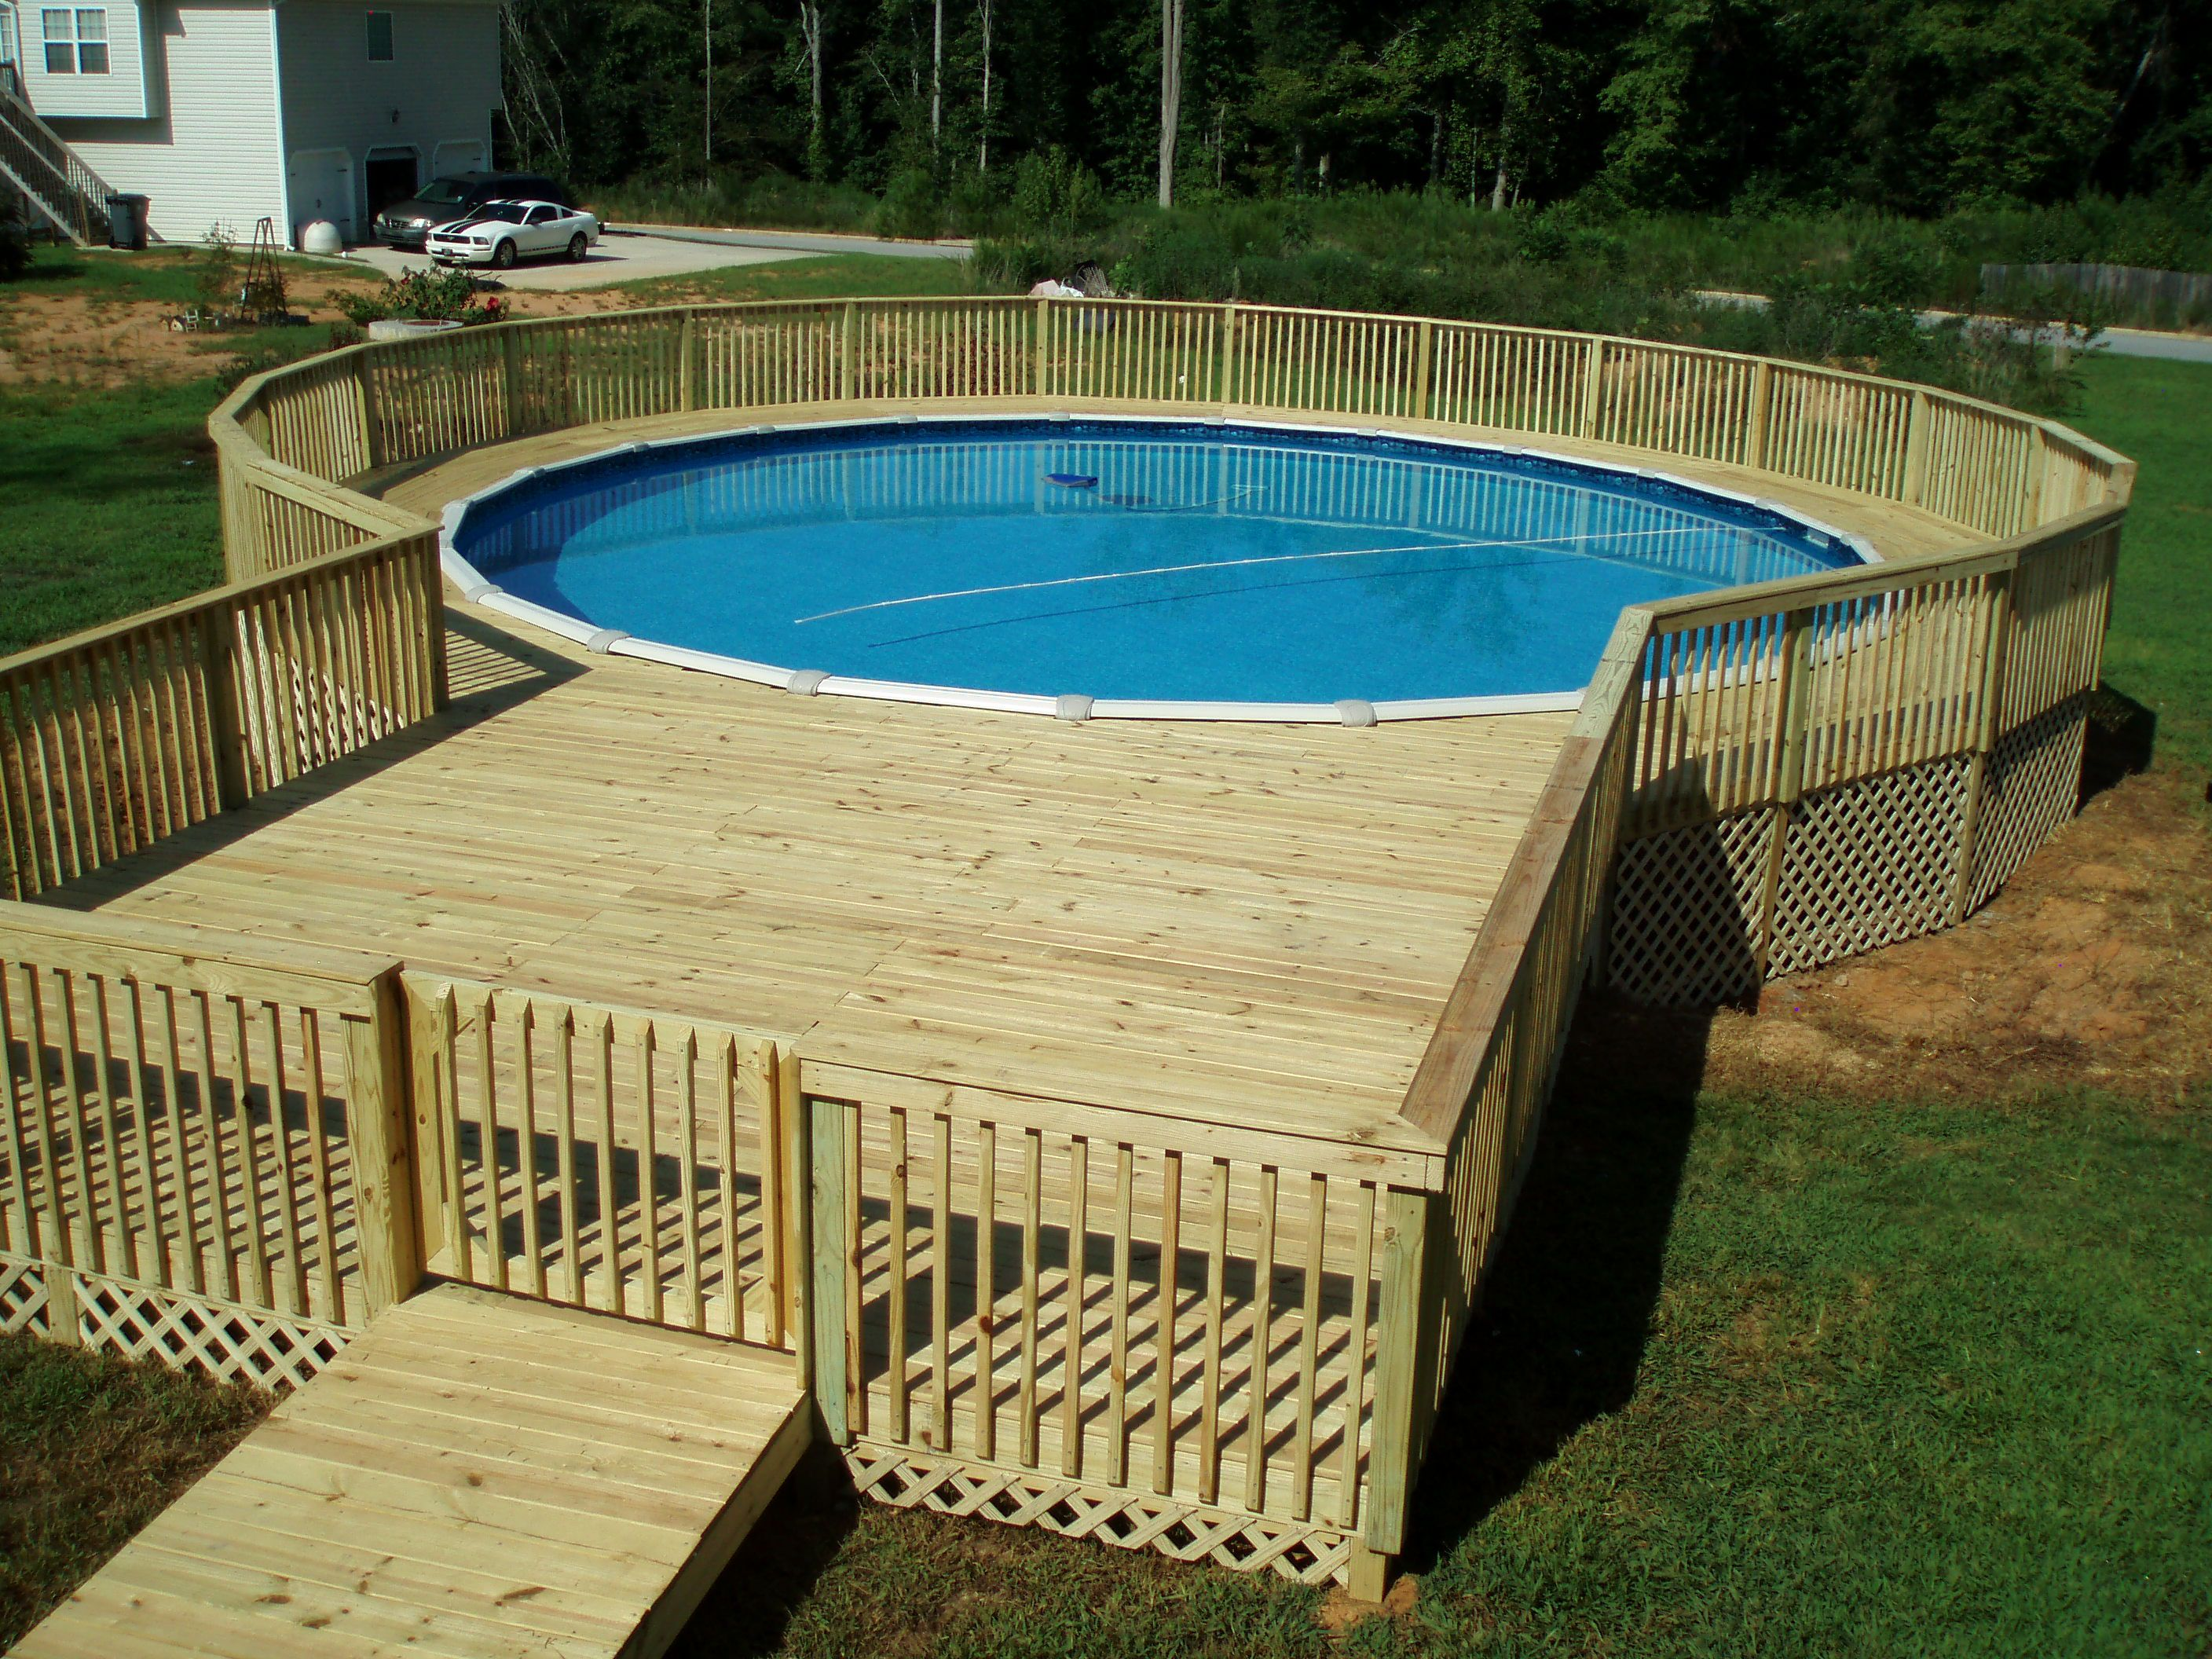 Amazing Design Pool Deck Ideas with Great Wooden Element on Large Green Grass